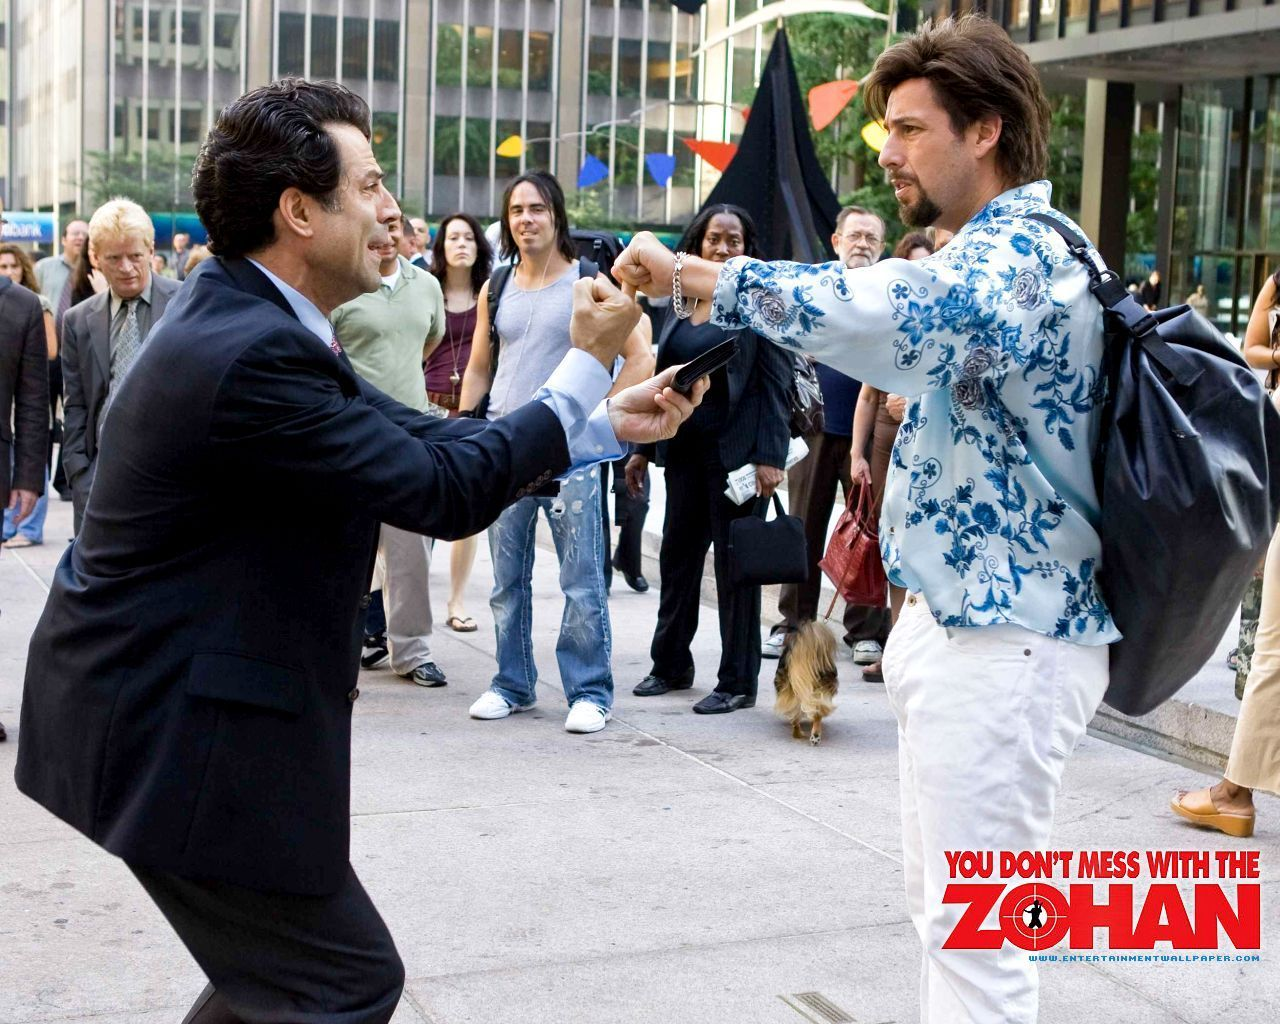 You Don't Mess with the Zohan movies